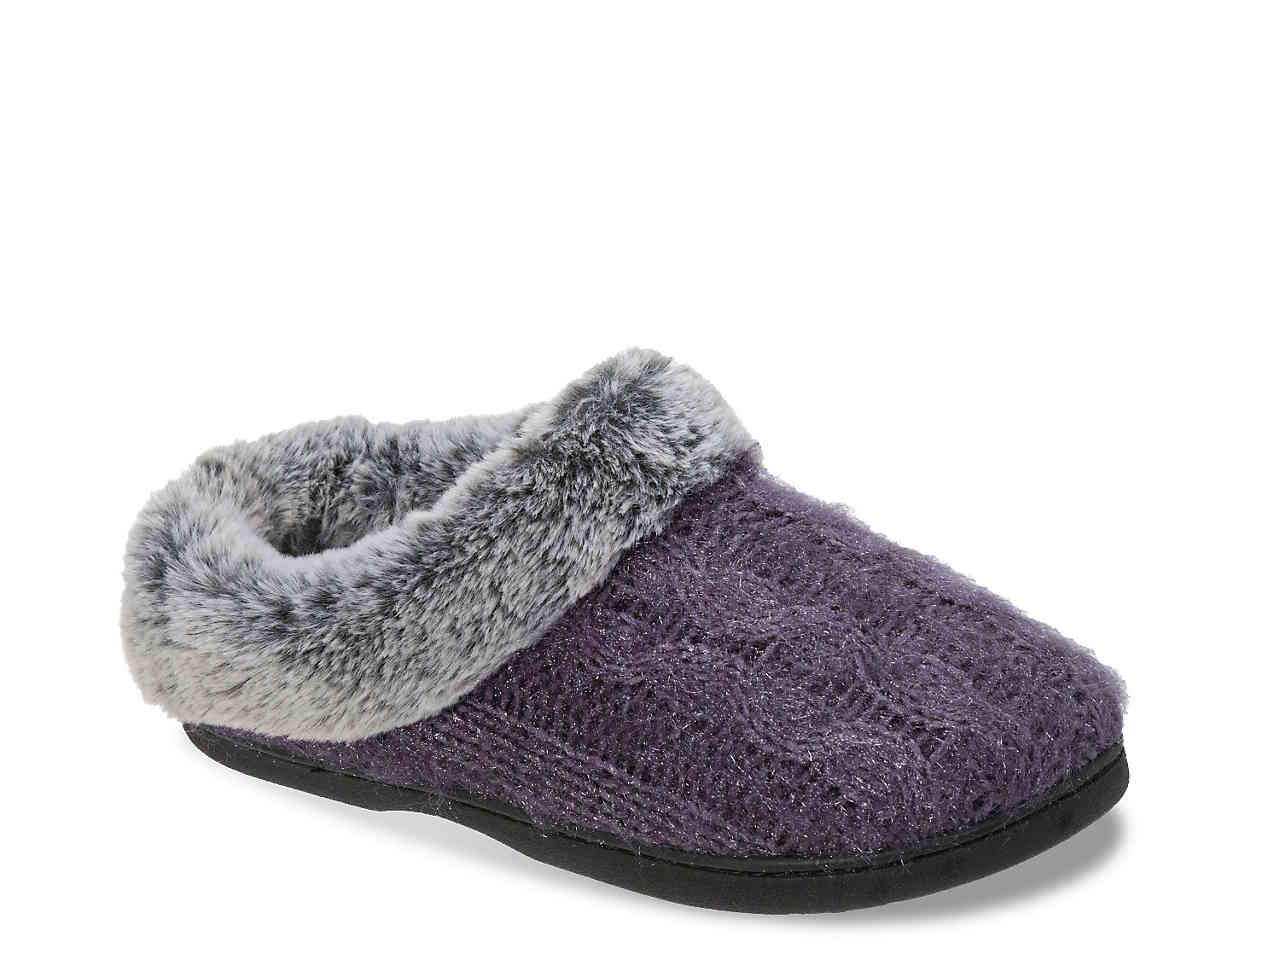 a0deb84383d7 Lyst - Nine West Luxe Cable Knit Slipper in Gray